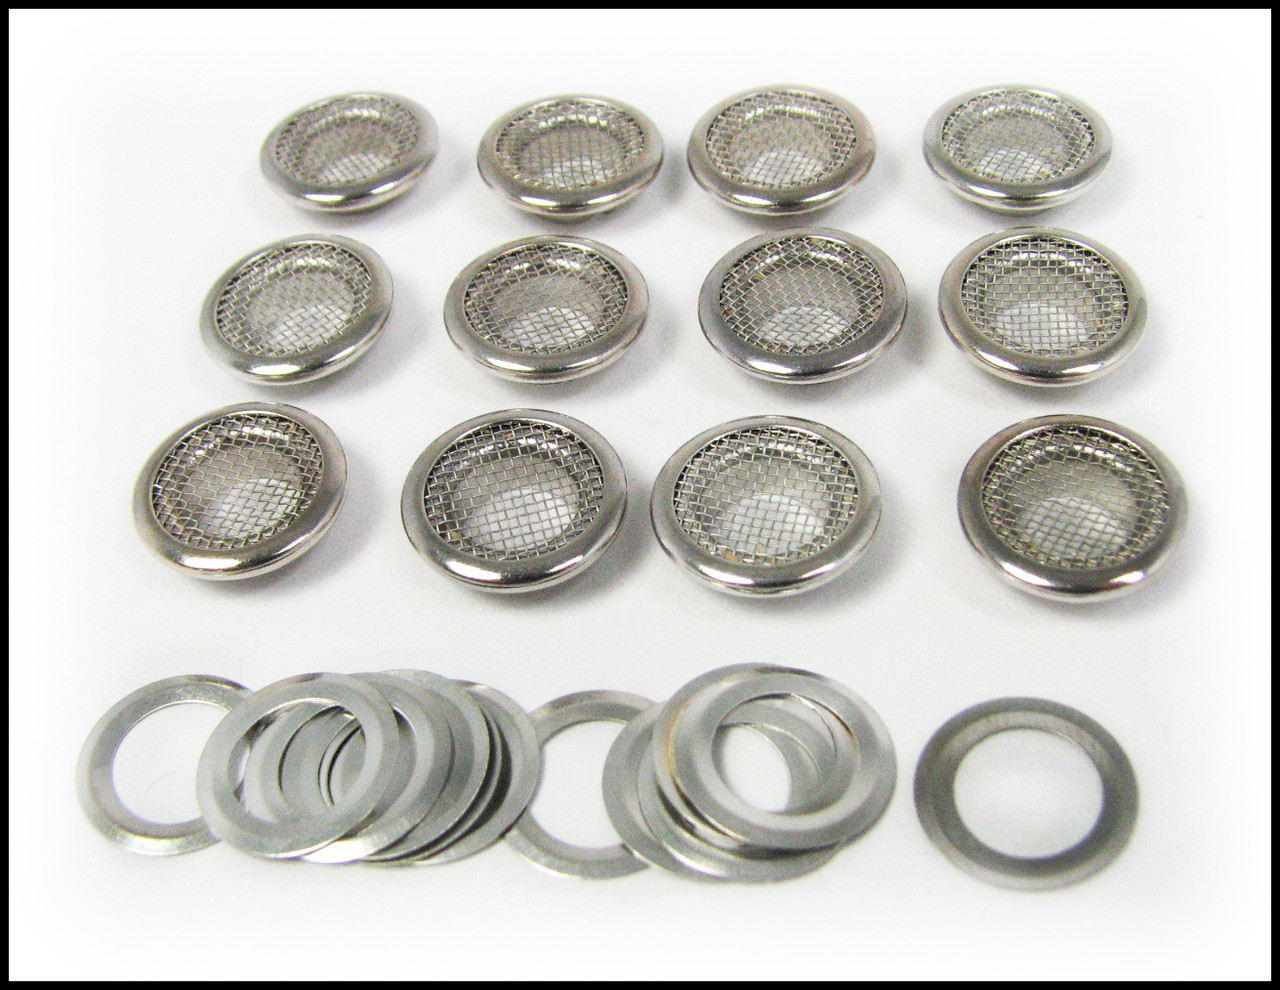 Cigar Box Guitar Parts 25pc 15mm Screened Nickel Grommets /& Washers